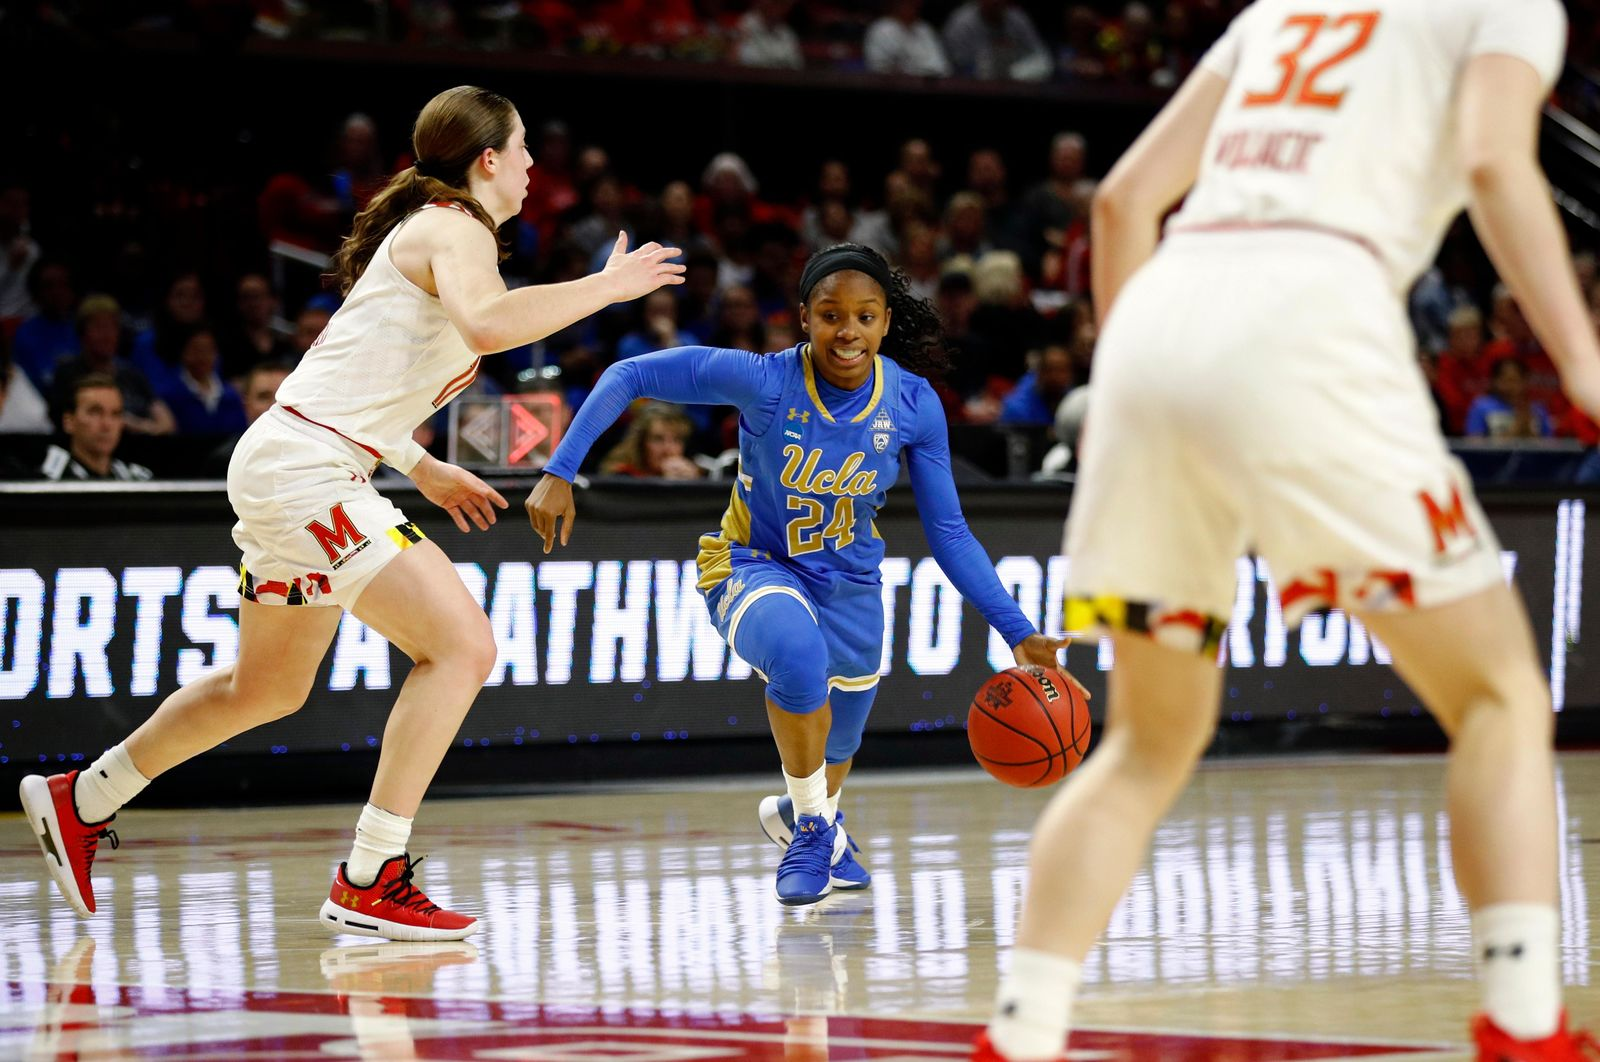 UCLA guard Japreece Dean, center, drives against Maryland guards Taylor Mikesell, left, and Sara Vujacic (32) during the first half of a second-round game in the NCAA women's college basketball tournament Monday, March 25, 2019, in College Park, Md. (AP Photo/Patrick Semansky)